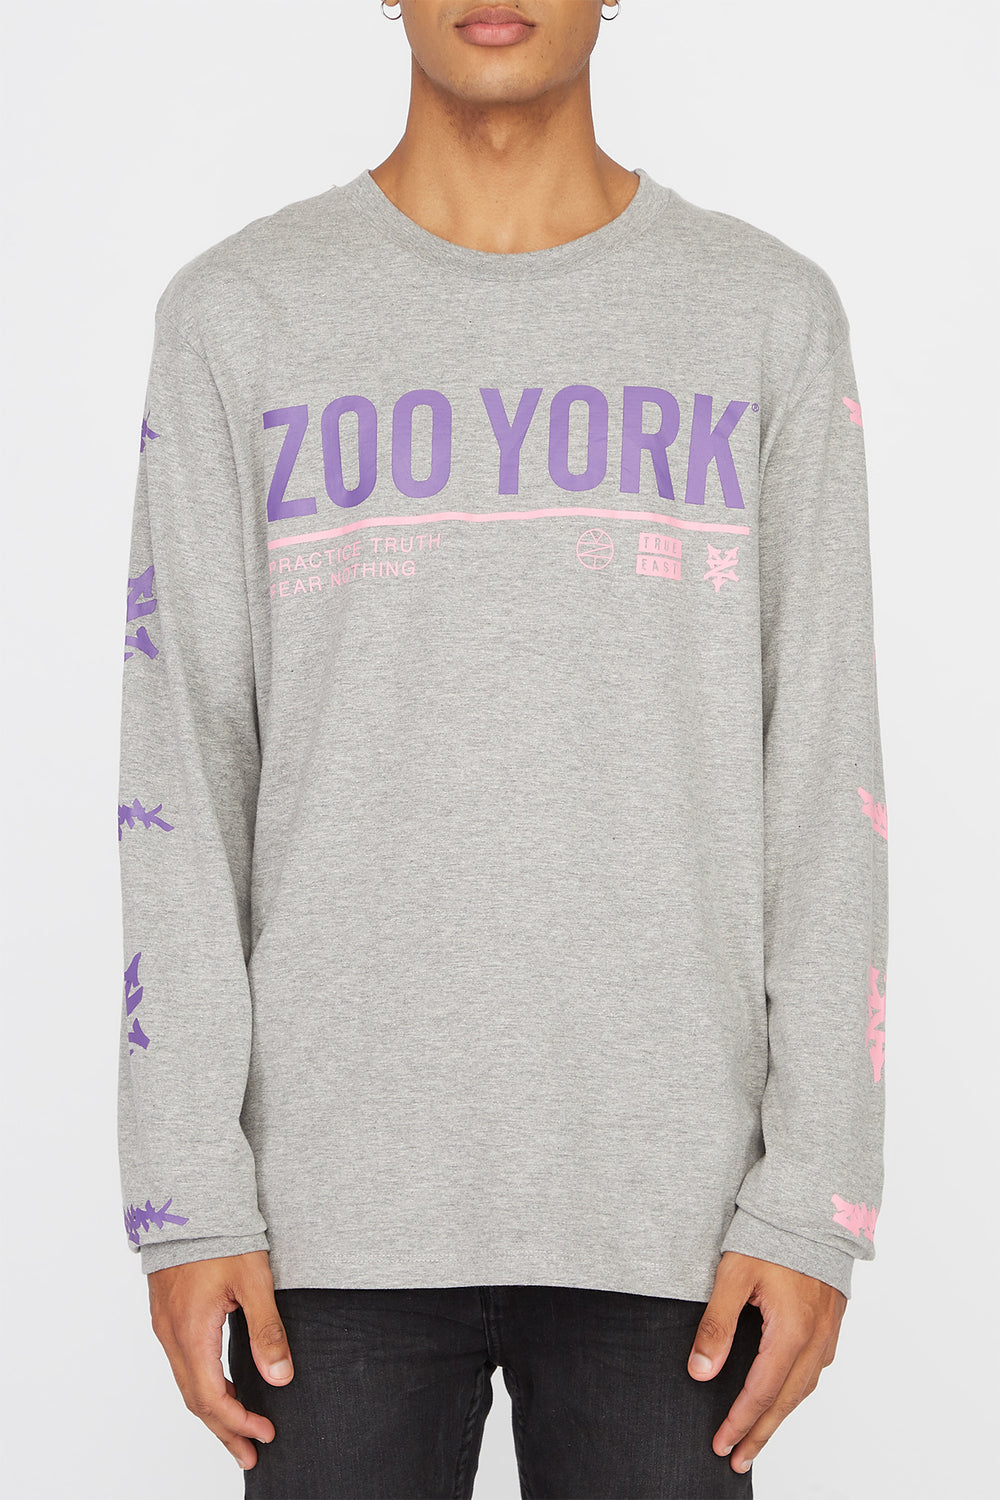 Zoo York Mens Practice Truth Long Sleeve Shirt Heather Grey